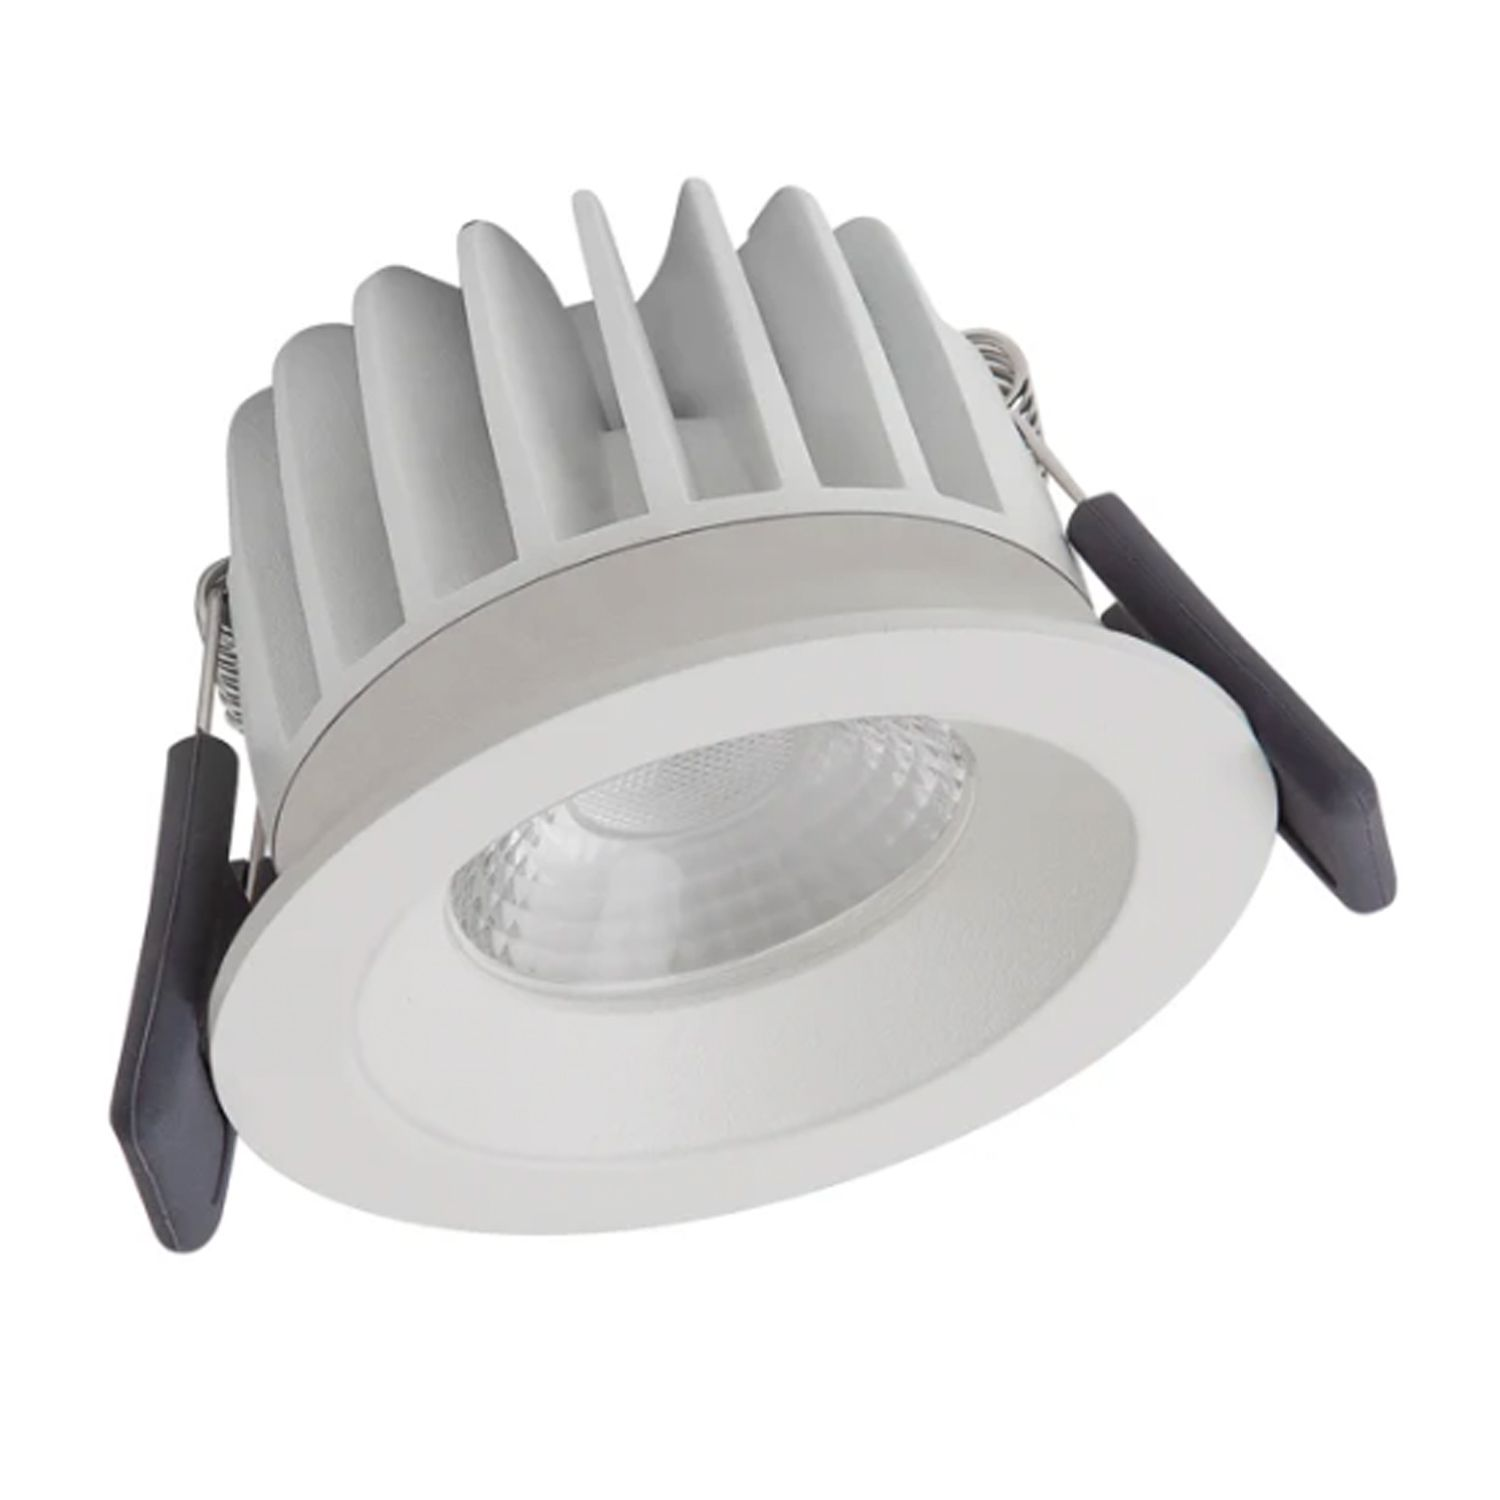 Ledvance LED downlight SPOT Round FIX 8W 4000K IP44 | kald hvit - dimbar